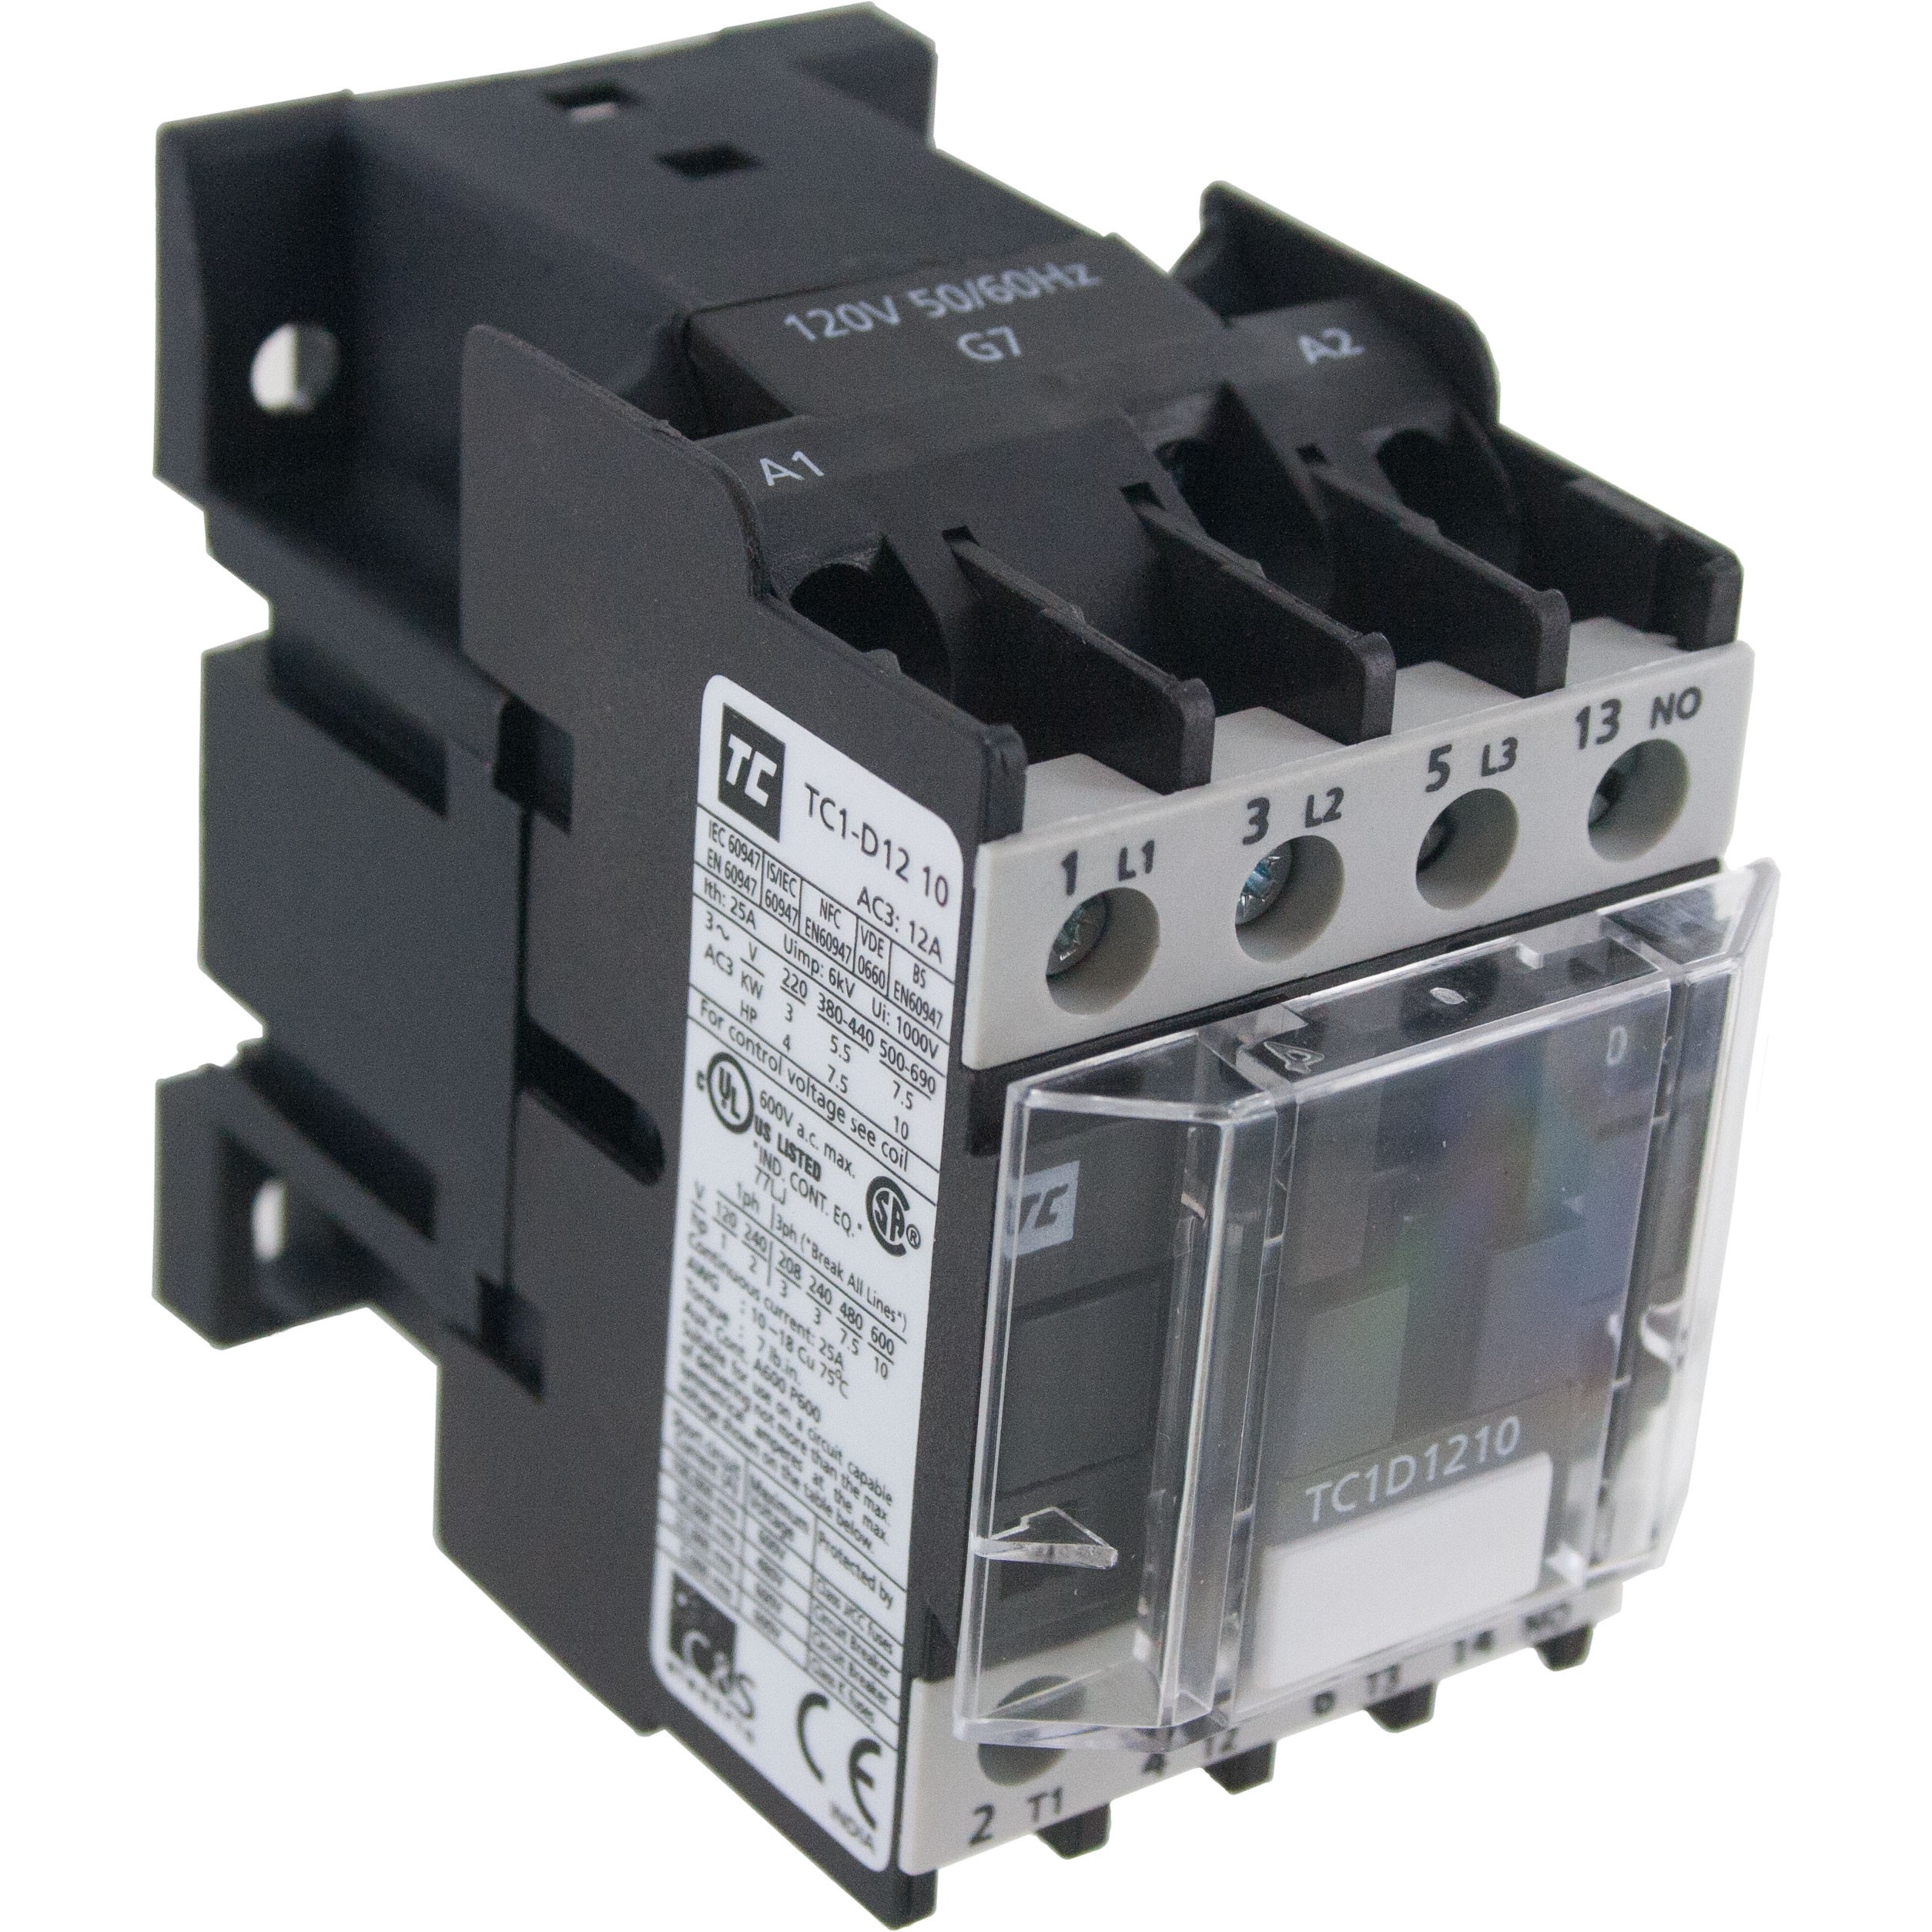 3 Pole Contactor 12 Amp 1 N/O 220 Vac Coil